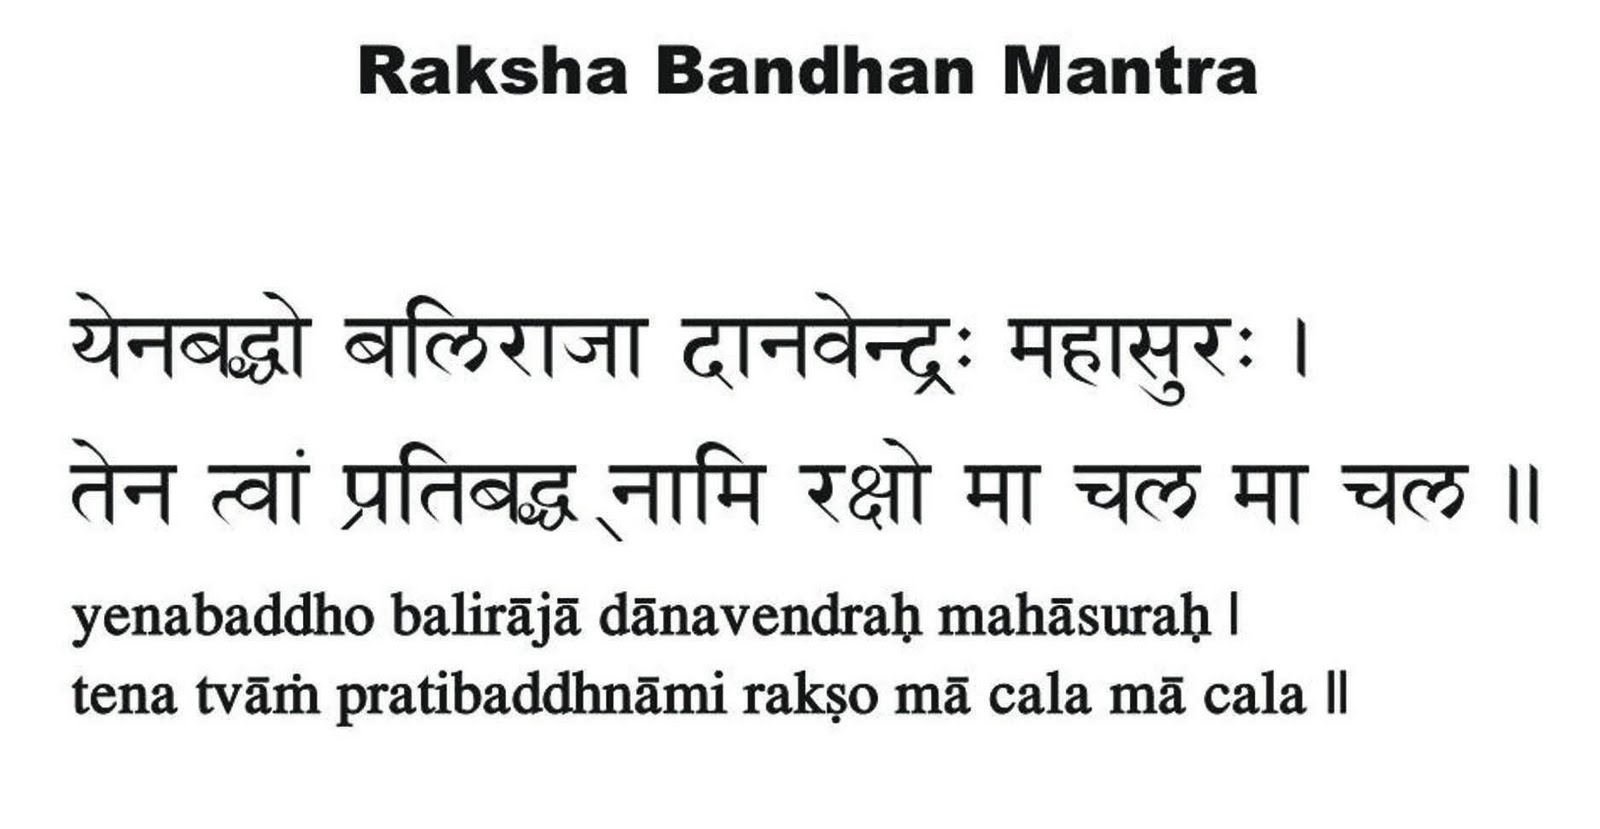 essay on raksha bandhan in sanskrit language